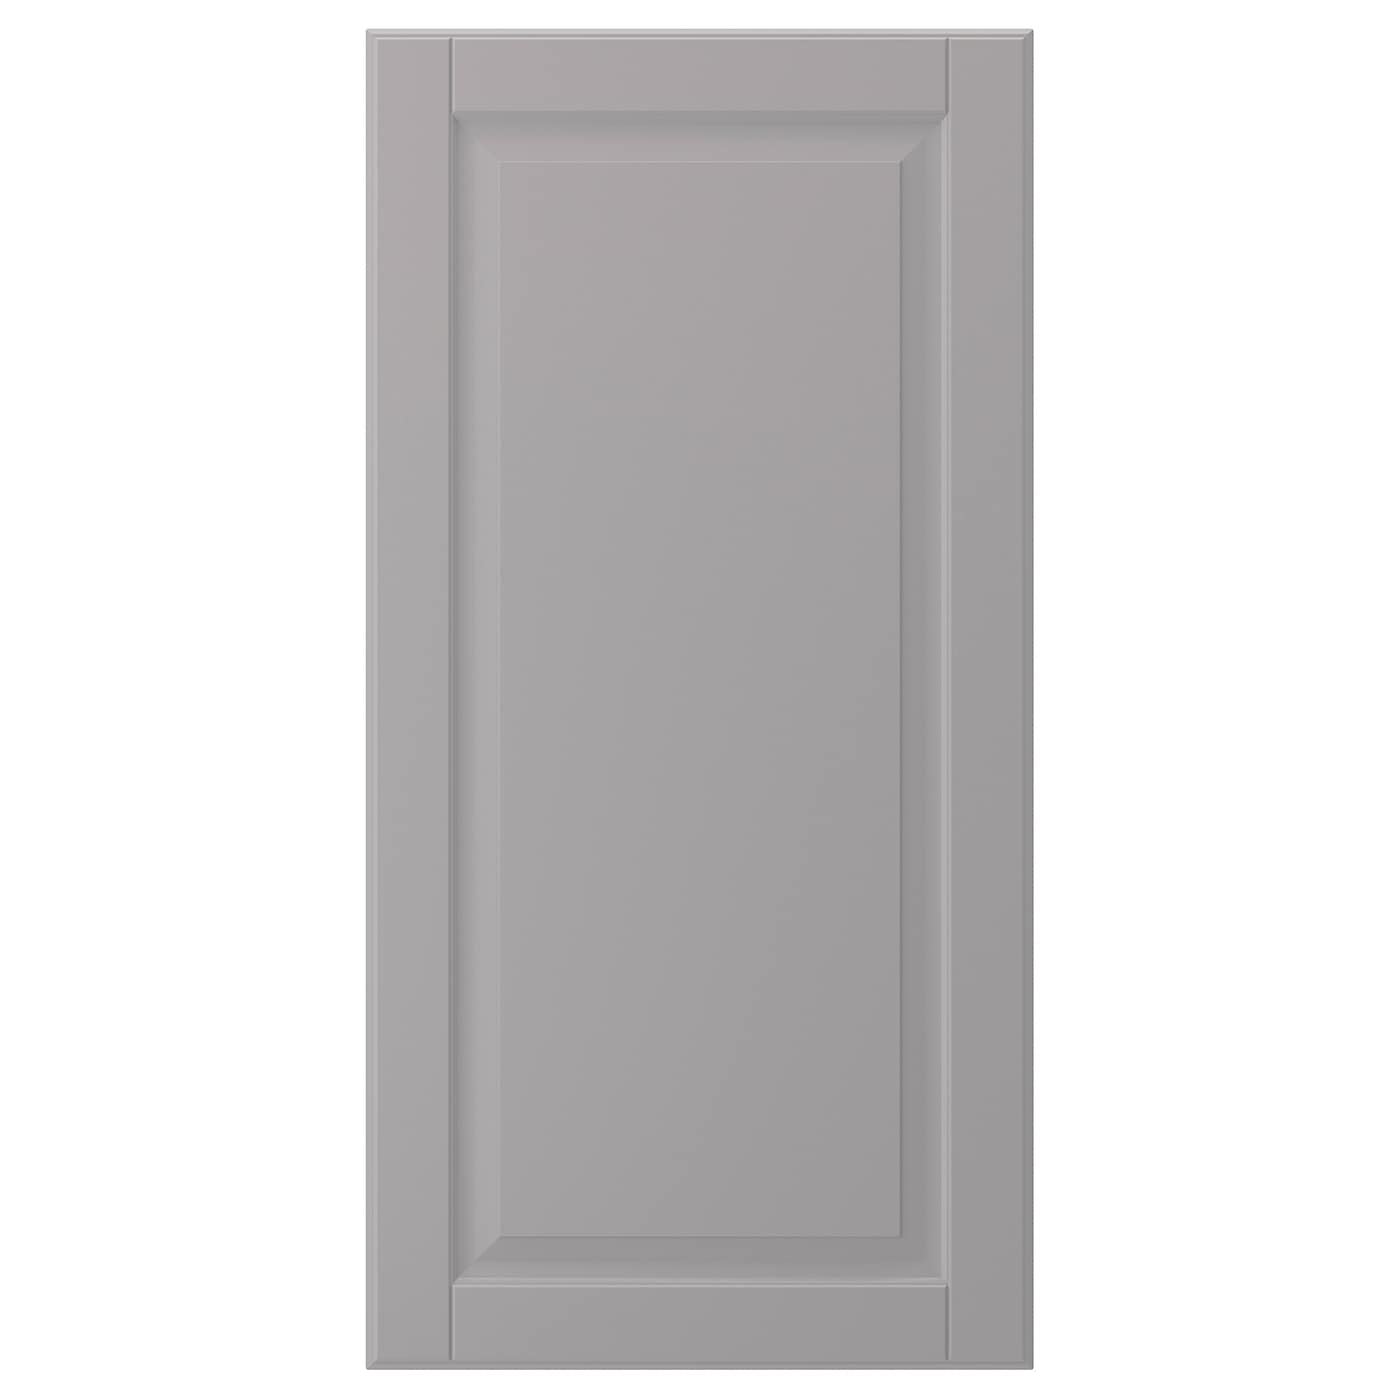 IKEA BODBYN door 25 year guarantee. Read about the terms in the guarantee brochure.